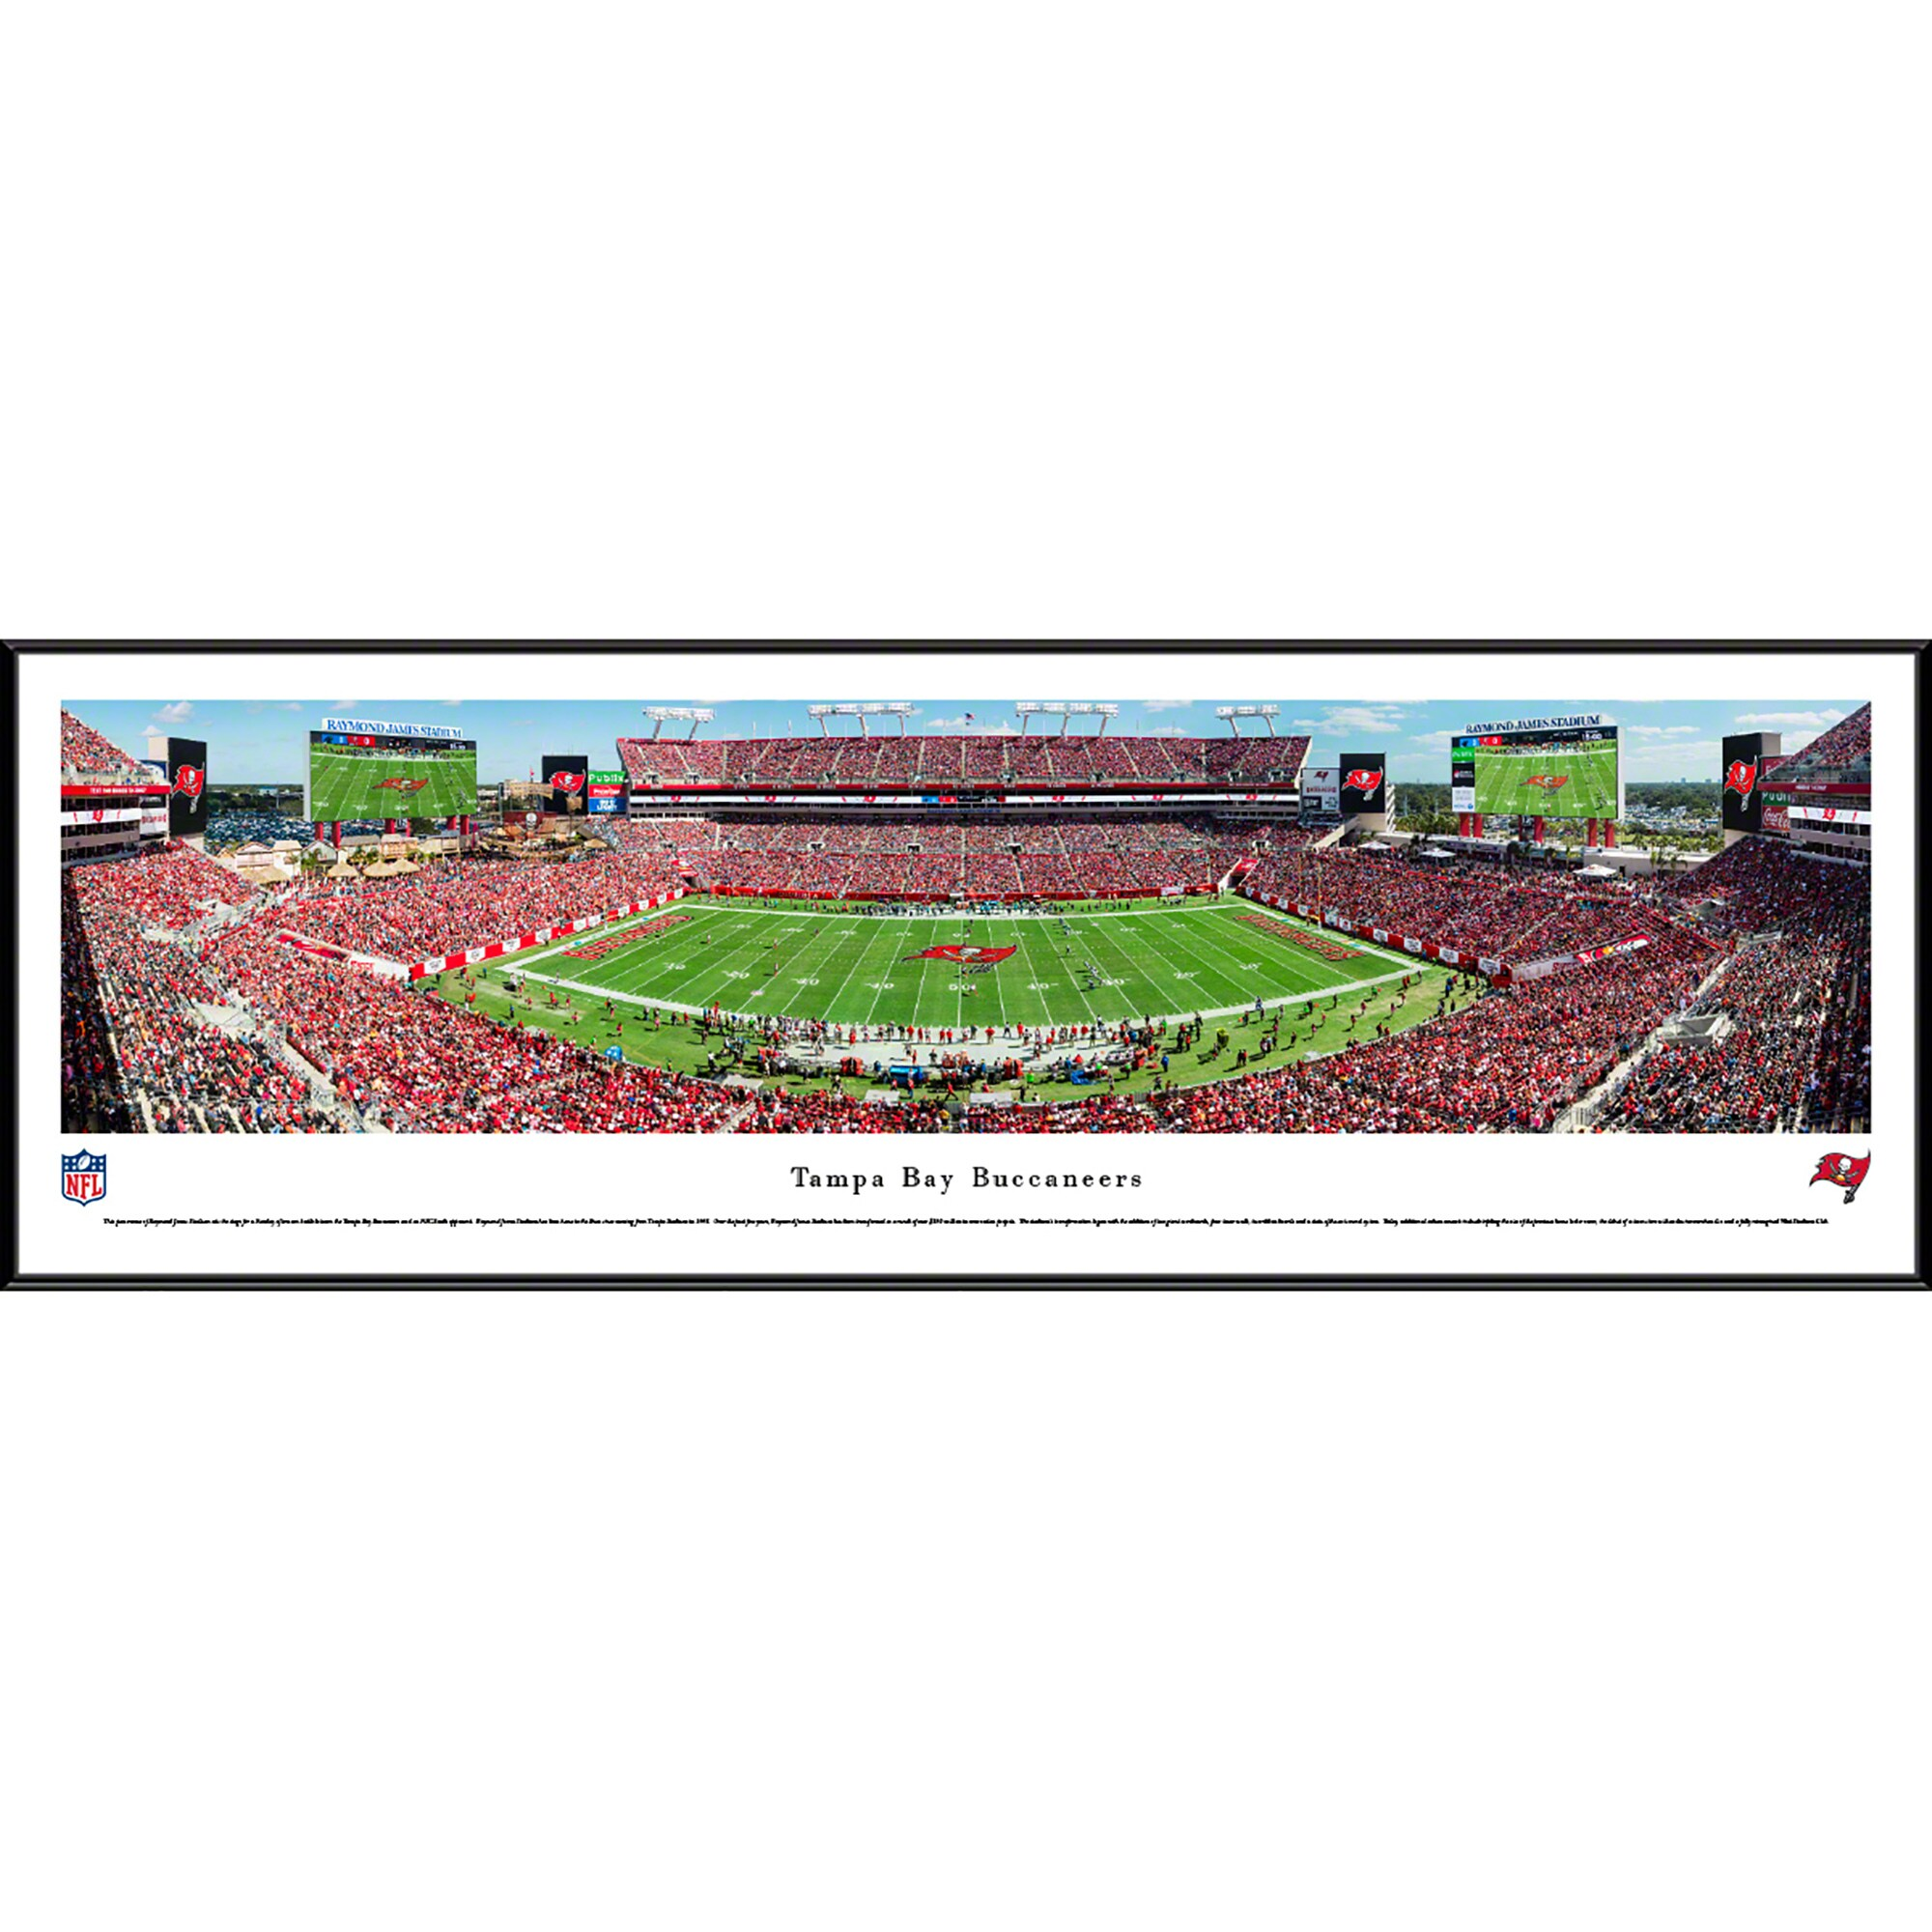 "Tampa Bay Buccaneers 40.25"" x 13.75"" 50-Yard Line Standard Framed Panoramic"